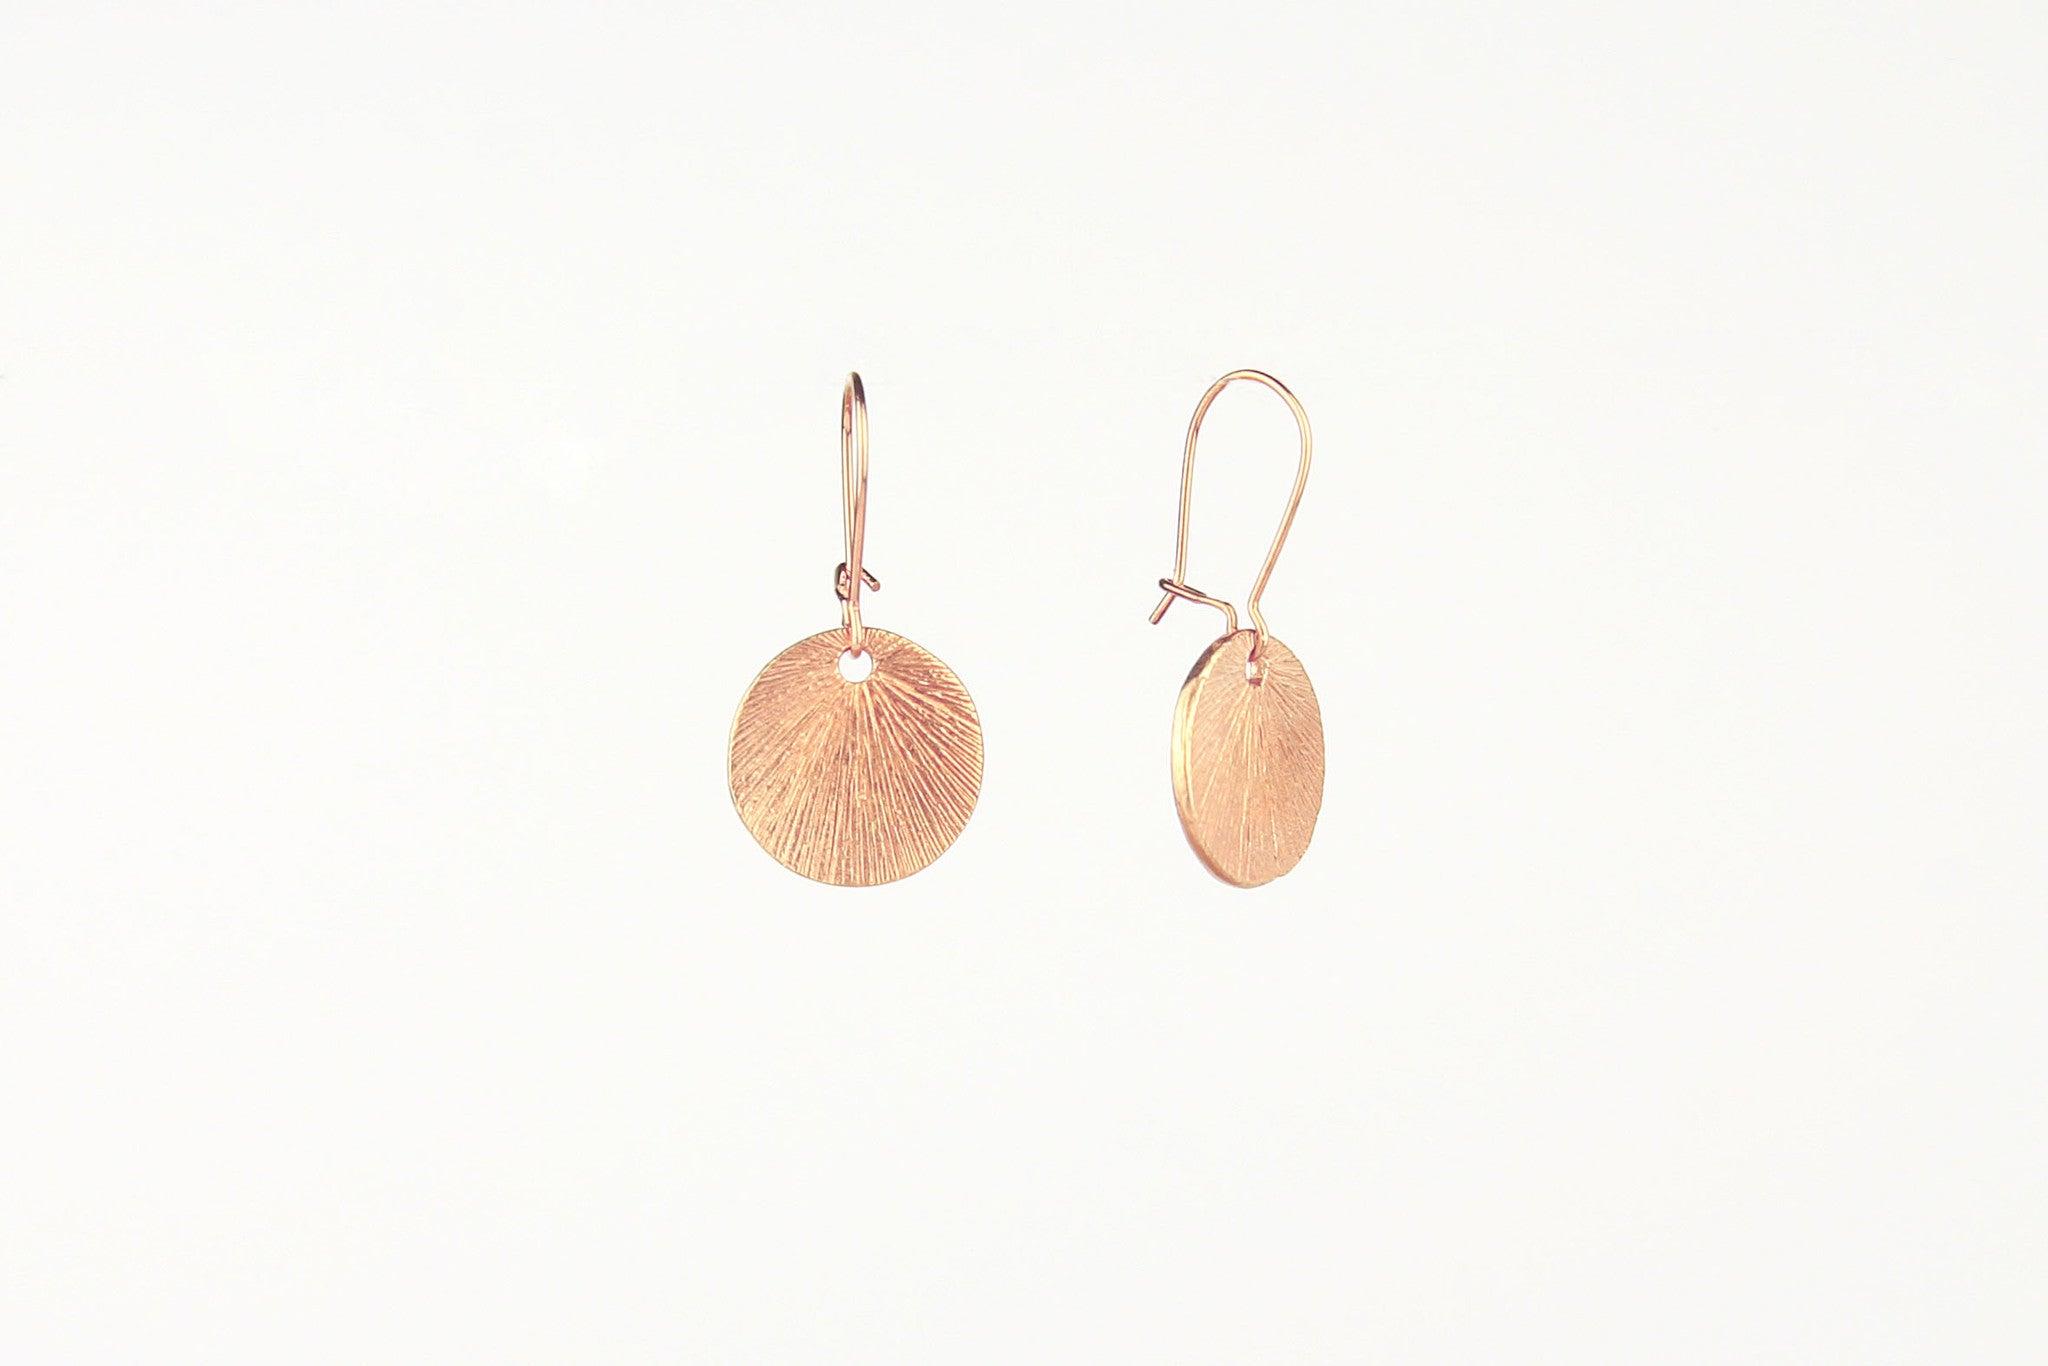 jewelberry ohrringe earrings medium shell rose gold plated sterling silver fine jewelry handmade with love fairtrade